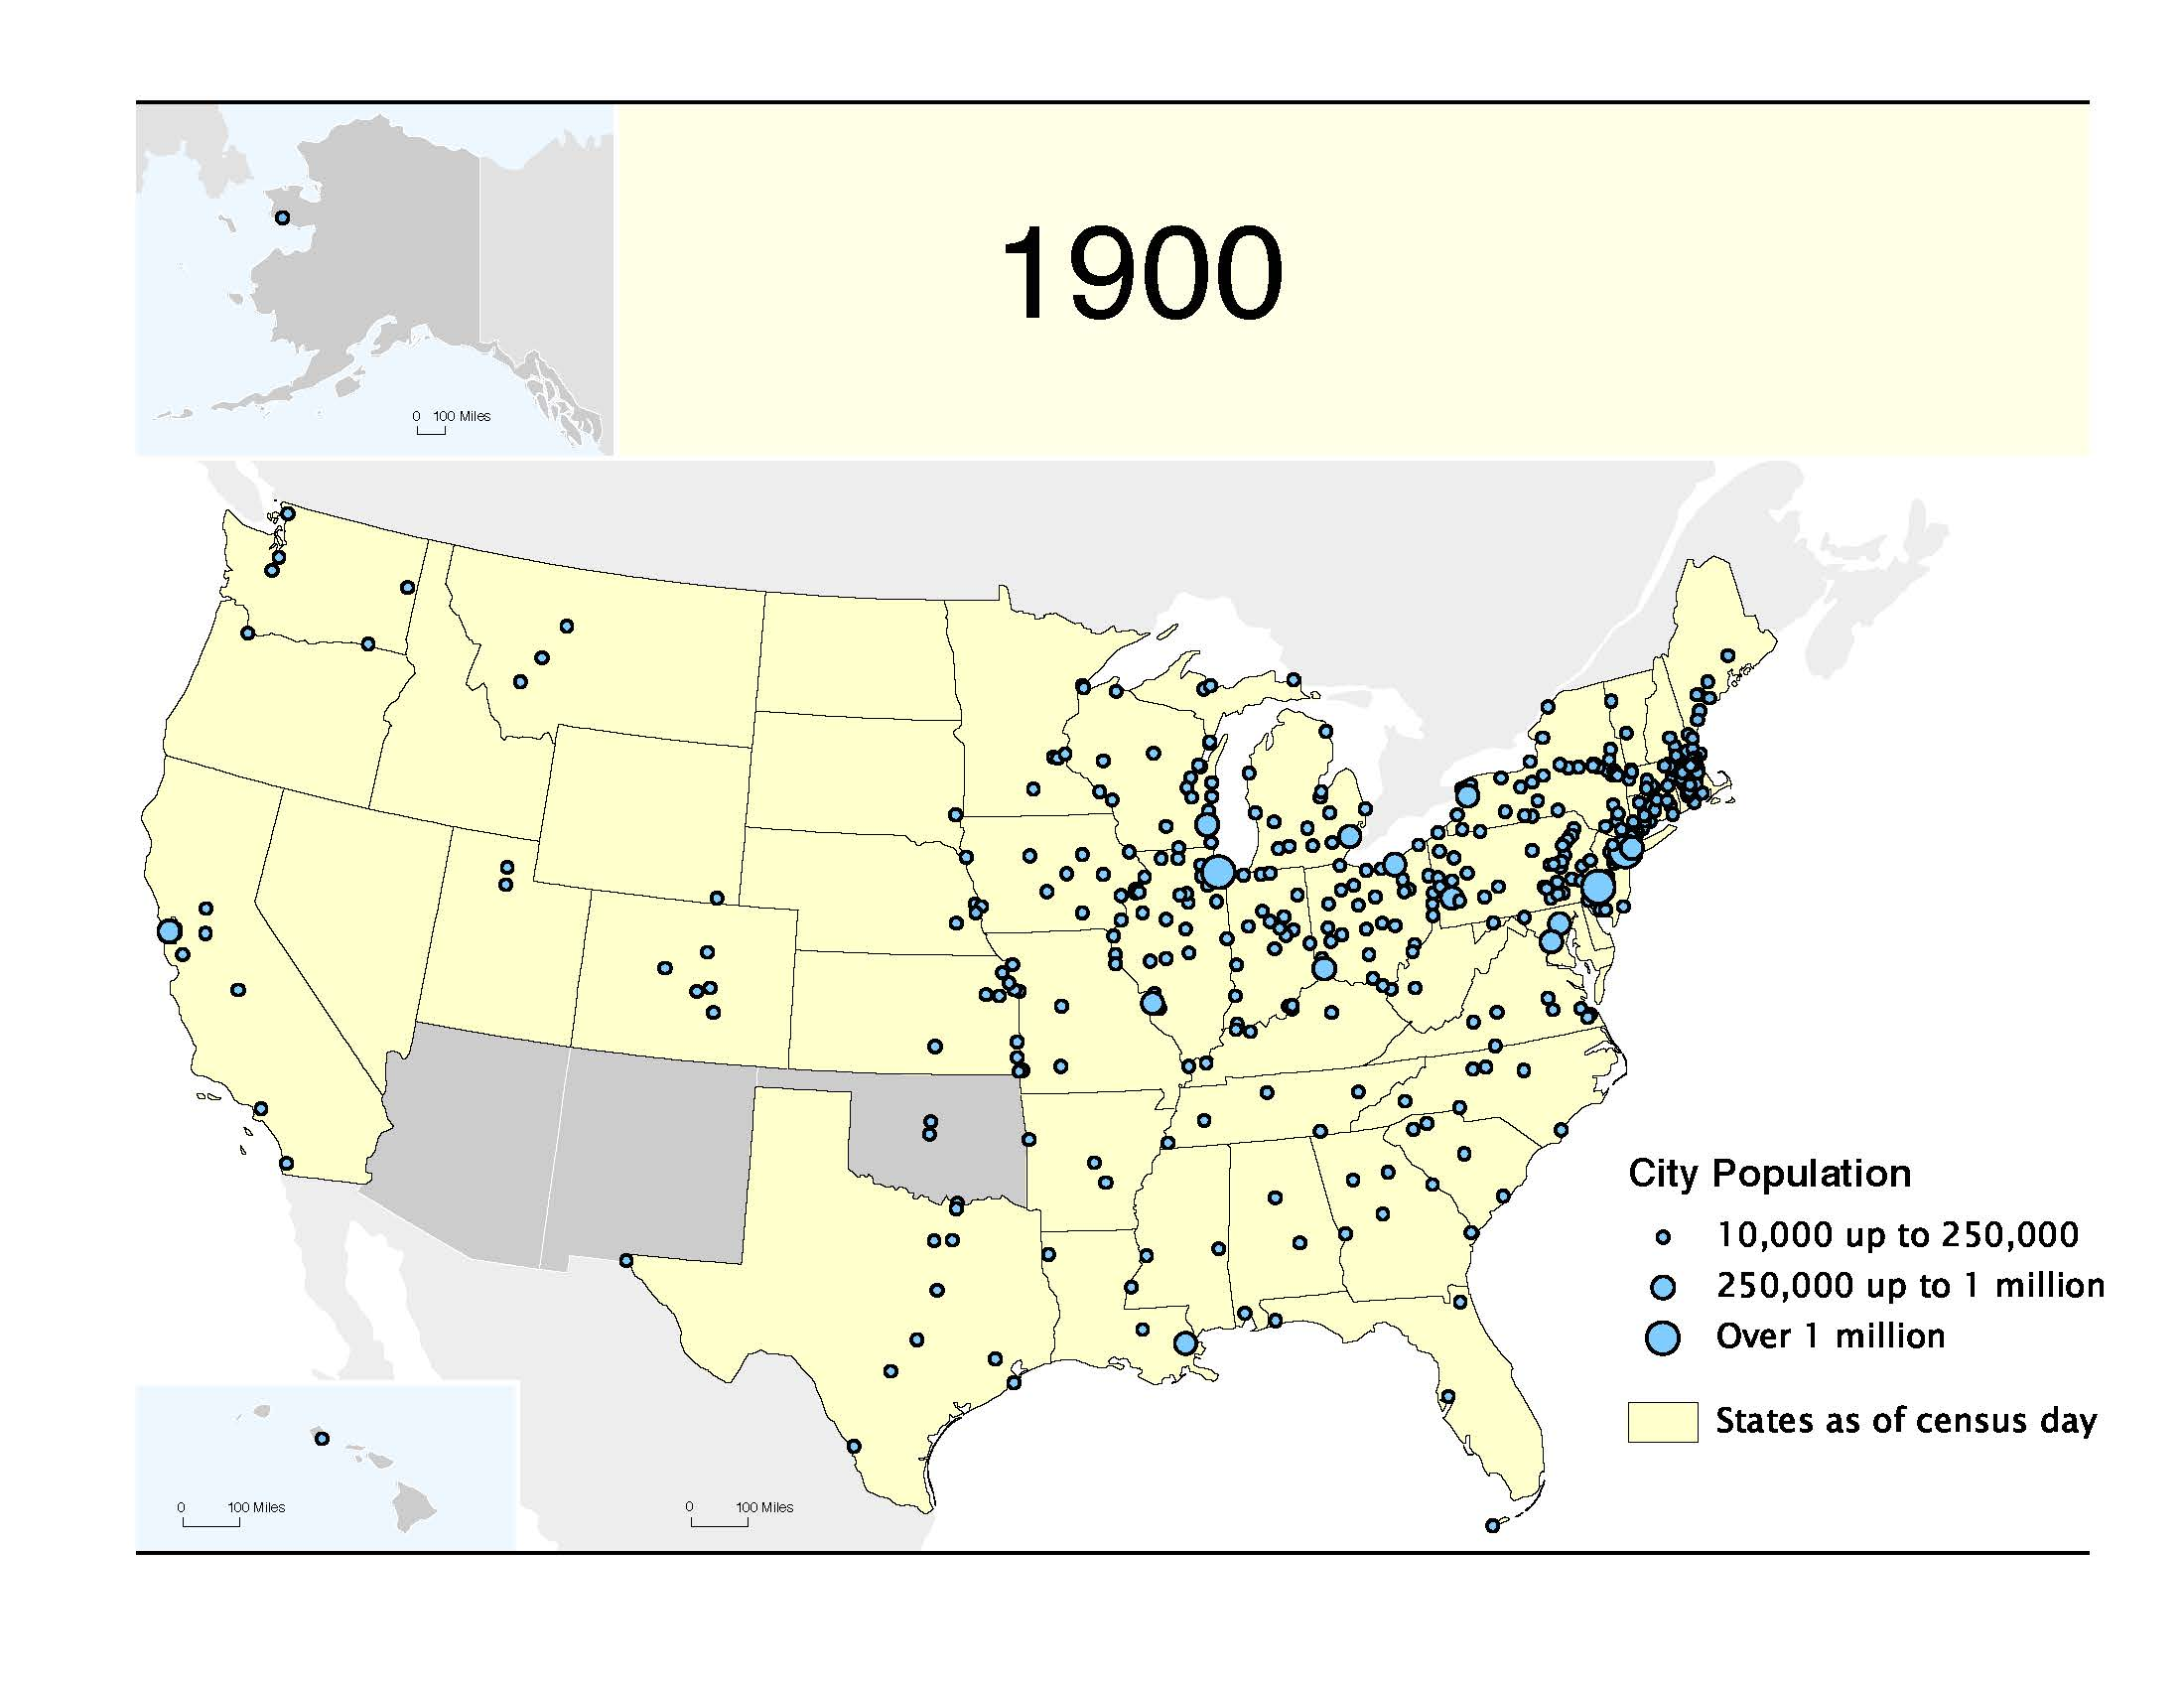 map city population 1900